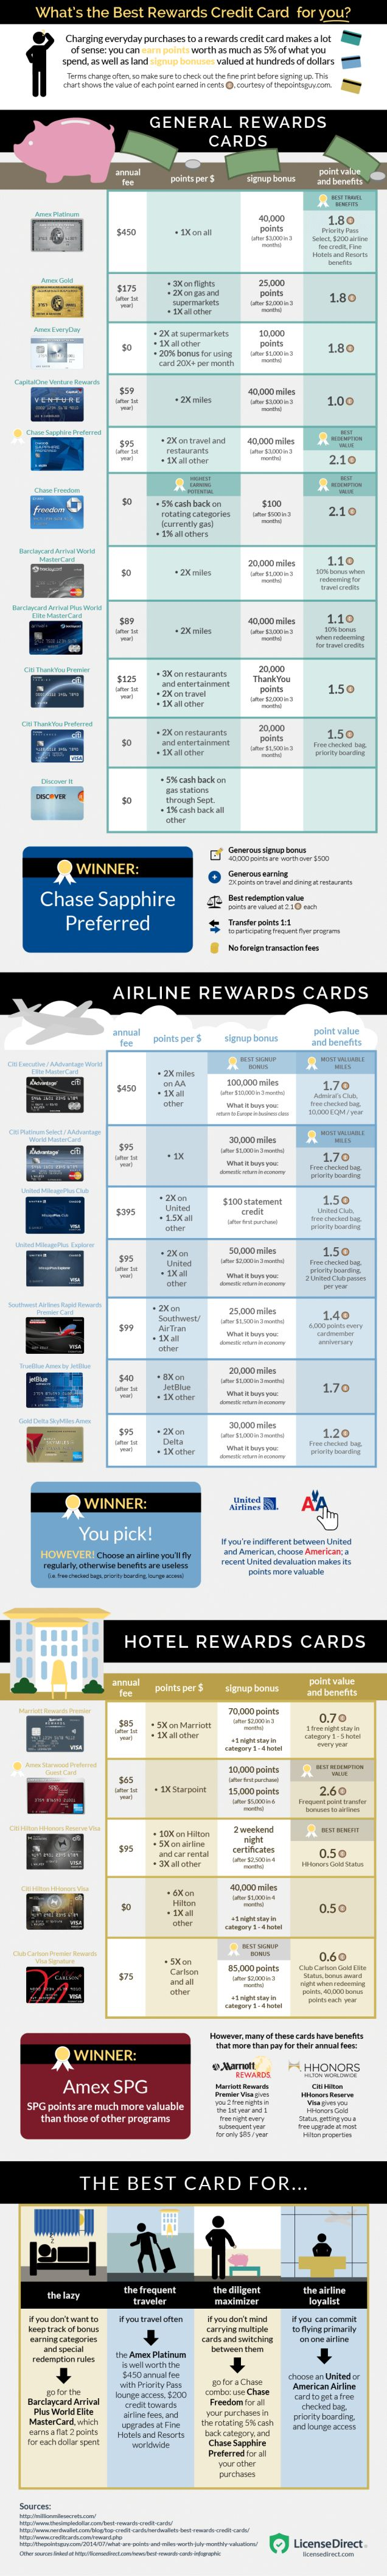 from lifehacker: This Graphic Compares 25 of the Most Popular Rewards Credit Cards